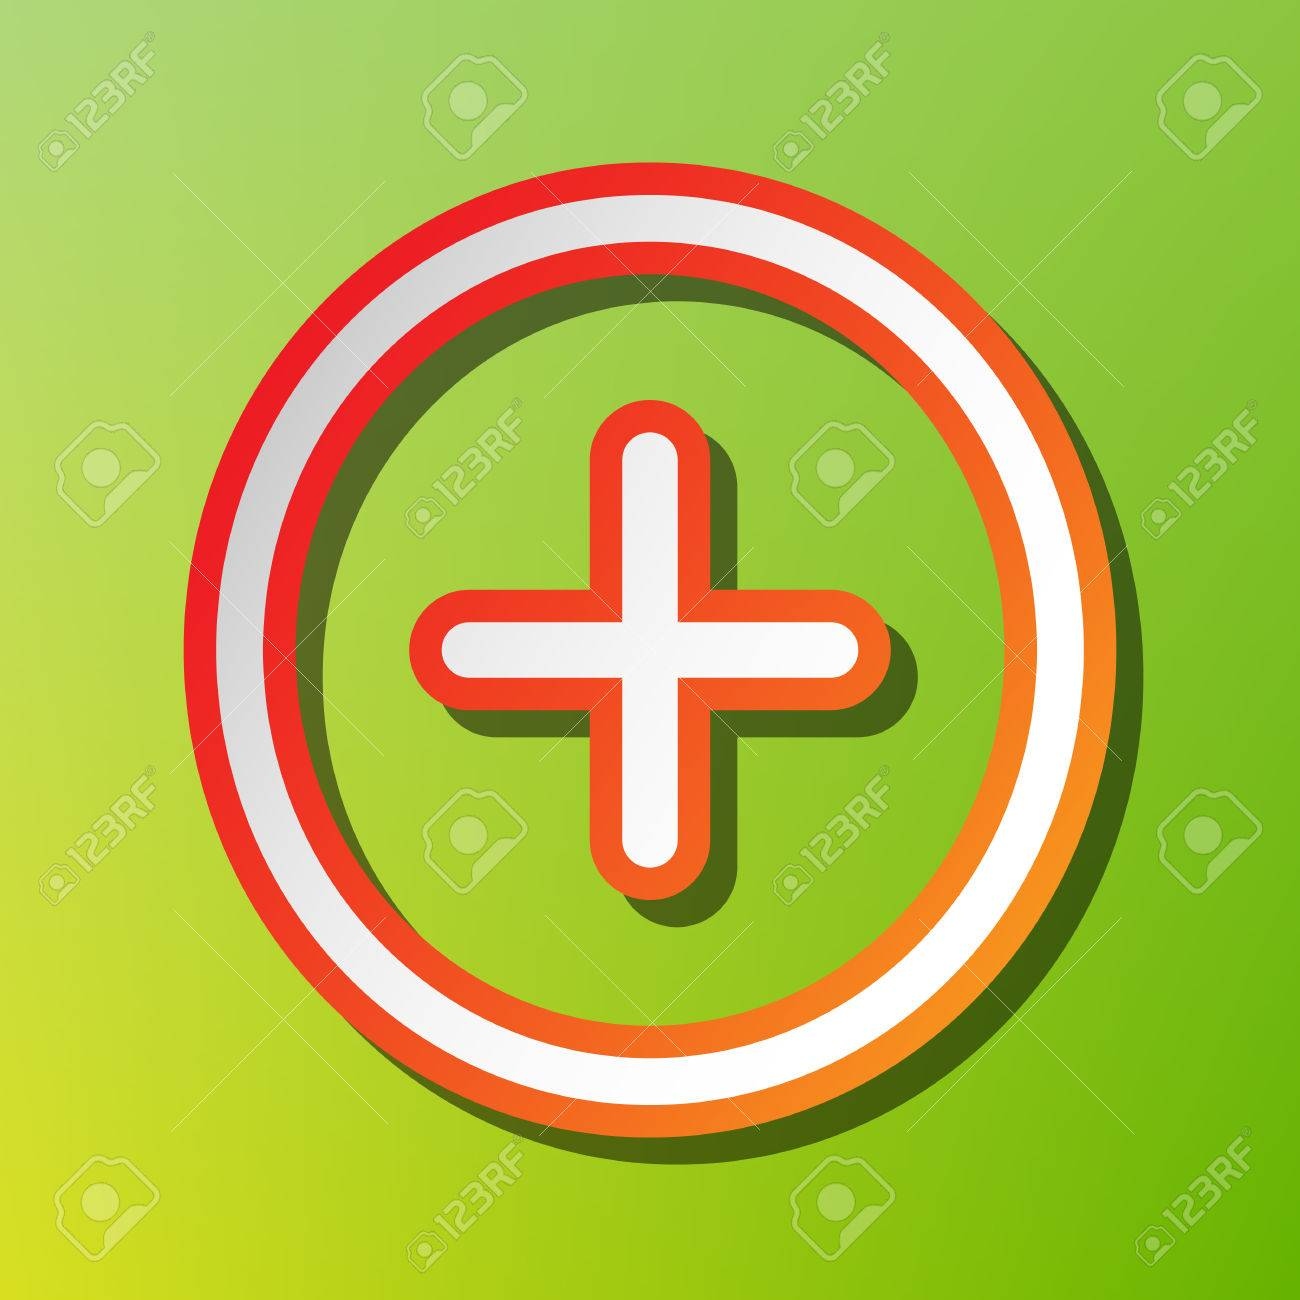 Positive Symbol Plus Sign Contrast Icon With Reddish Stroke On